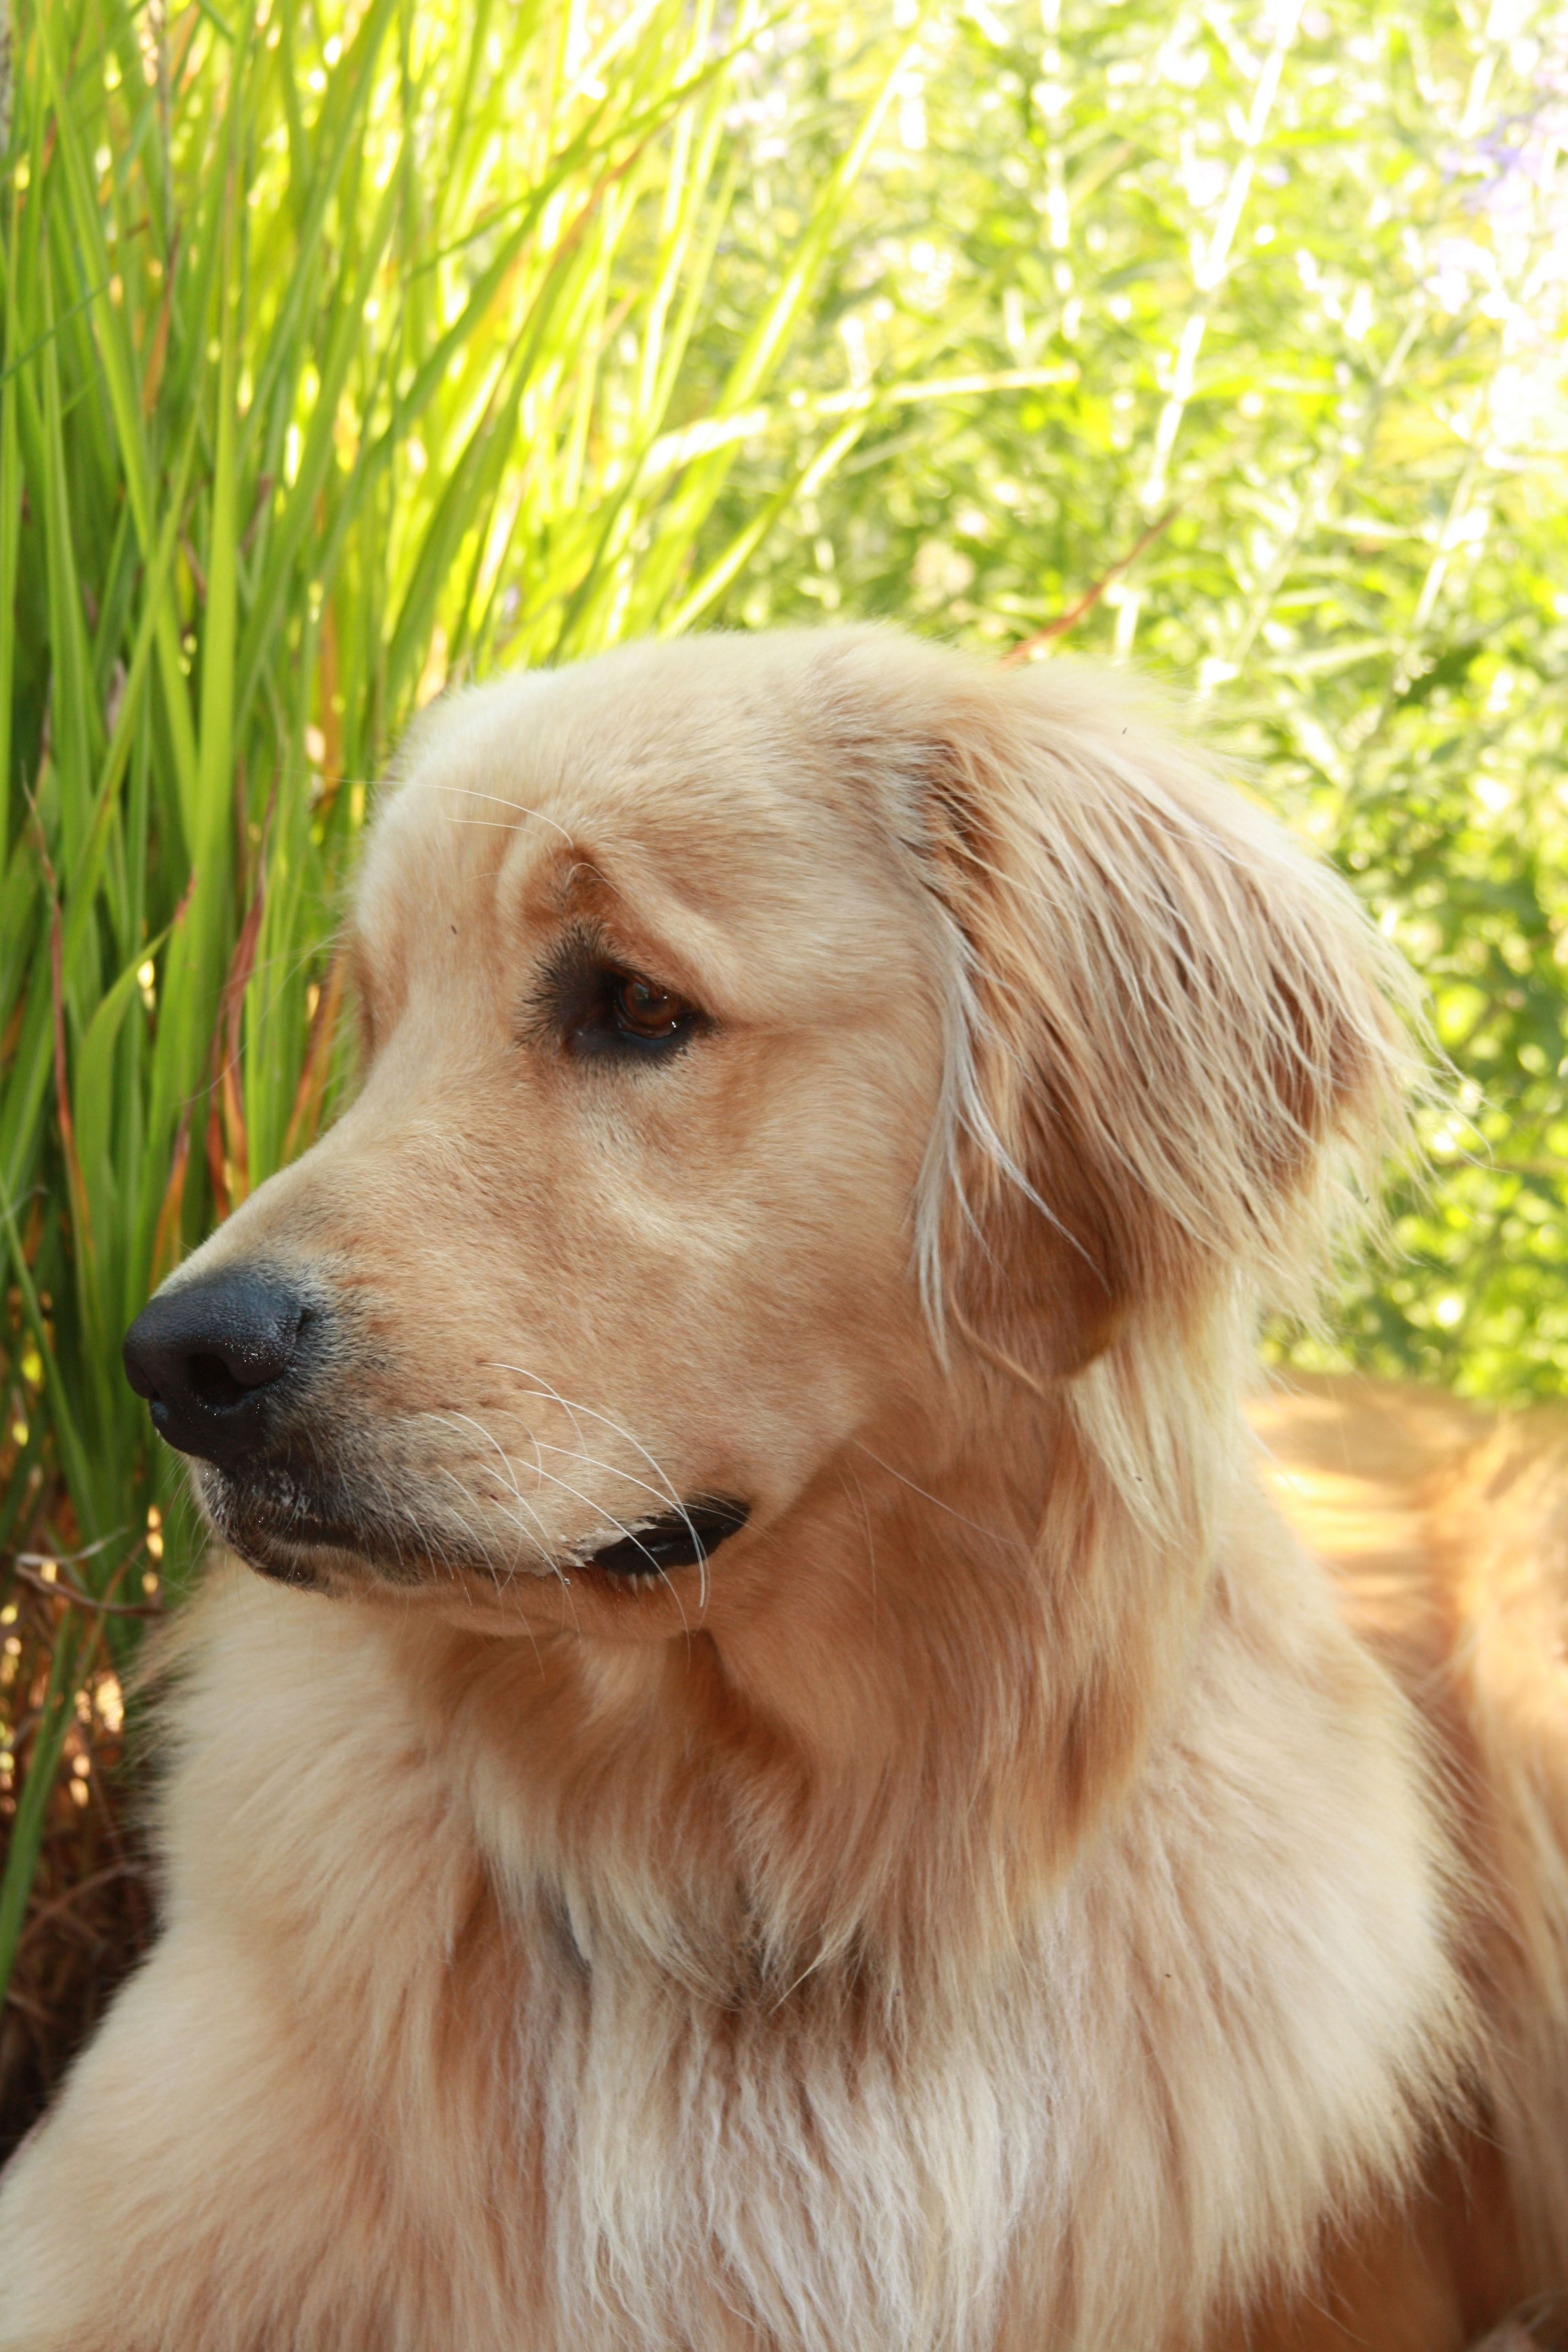 Love That Raised Eyebrow Look Goldens Have Shadow Used To Do The